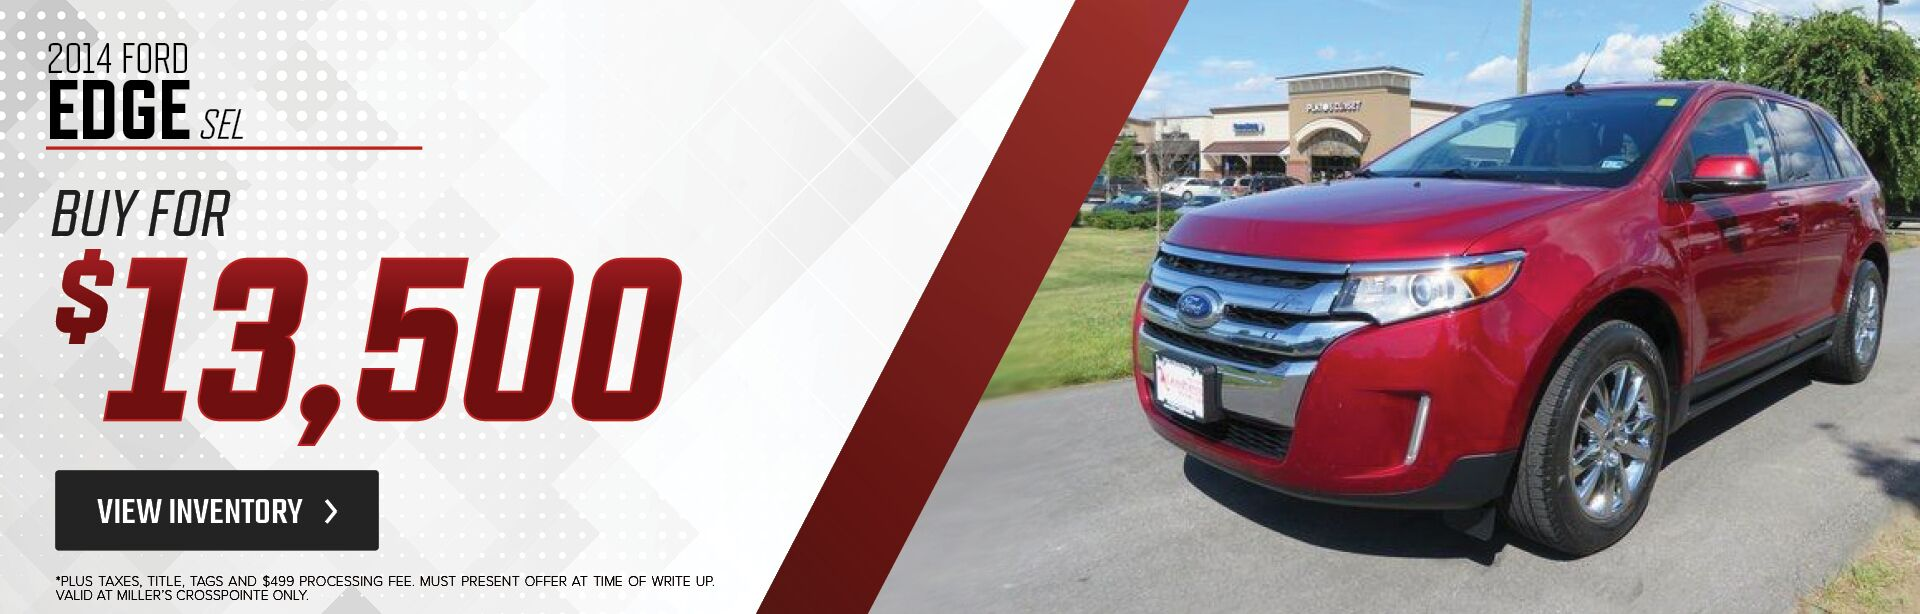 2014 Ford Edge Special